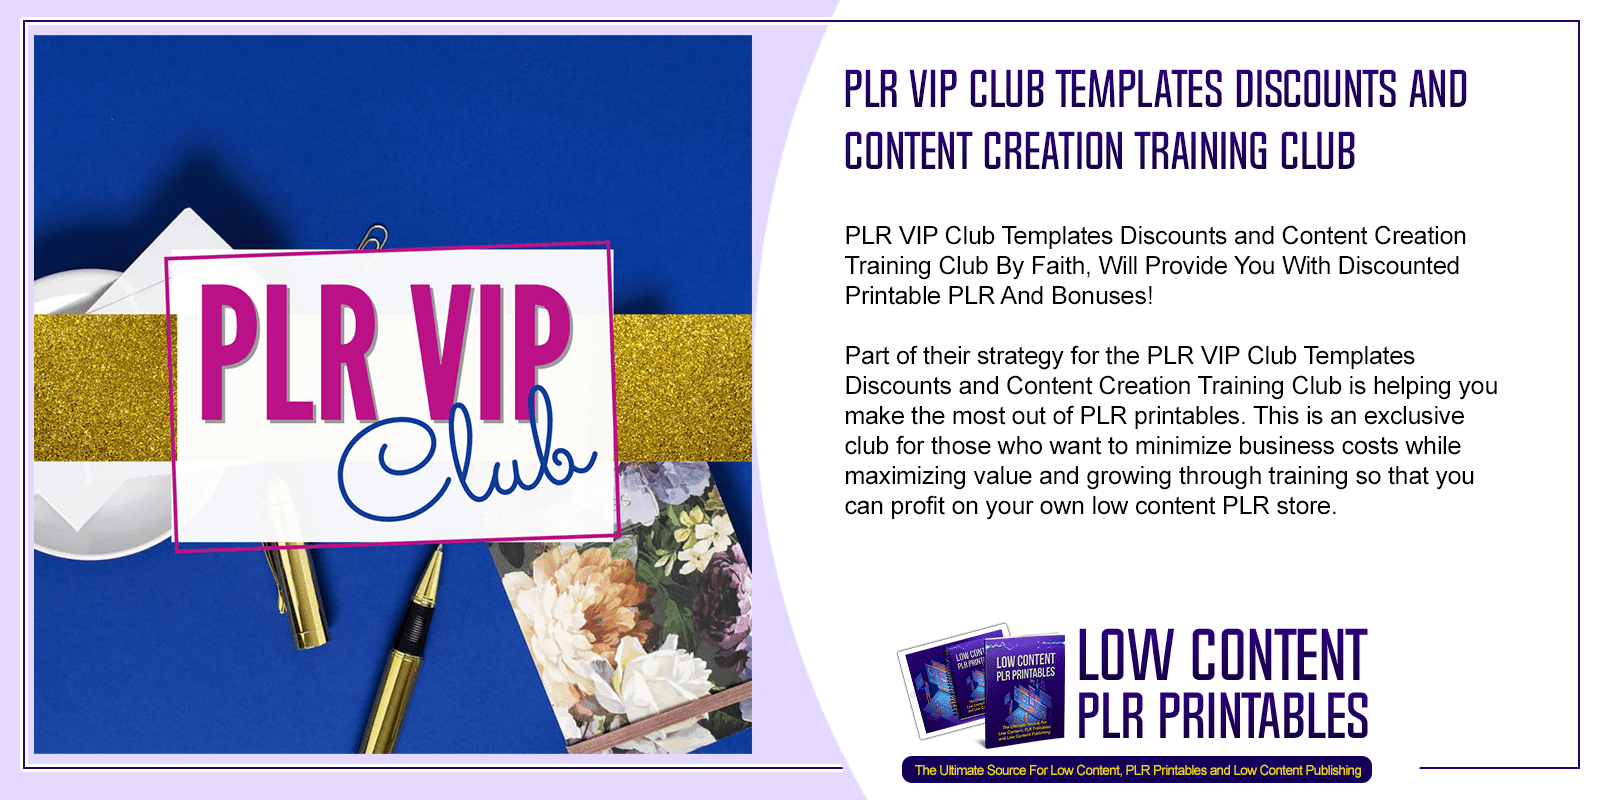 PLR VIP Club Templates Discounts and Content Creation Training Club